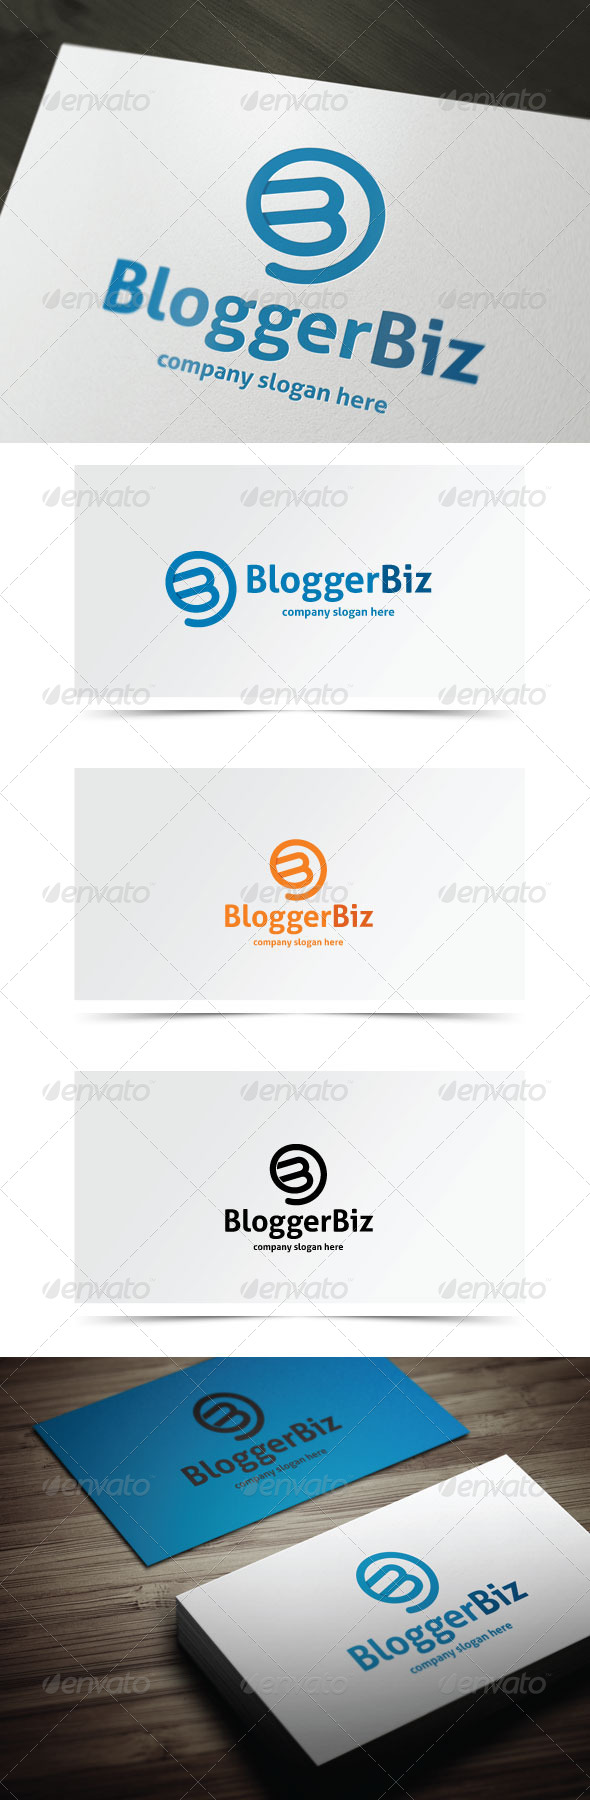 GraphicRiver Blogger Biz 6363831